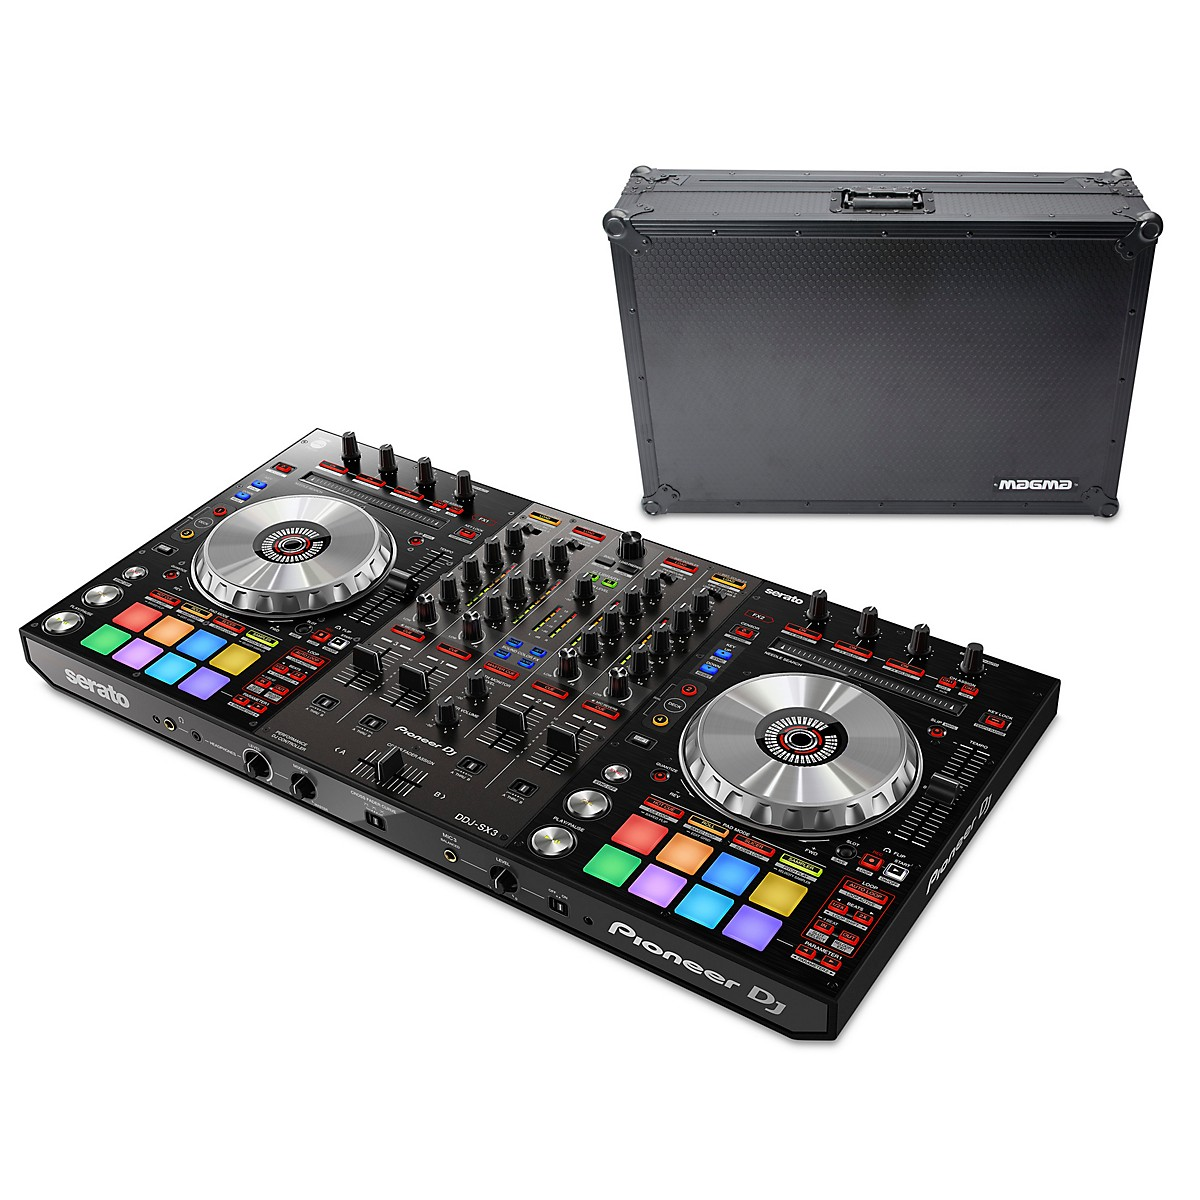 Pioneer DDJ-SX3 Performance DJ Controller With Magma Case